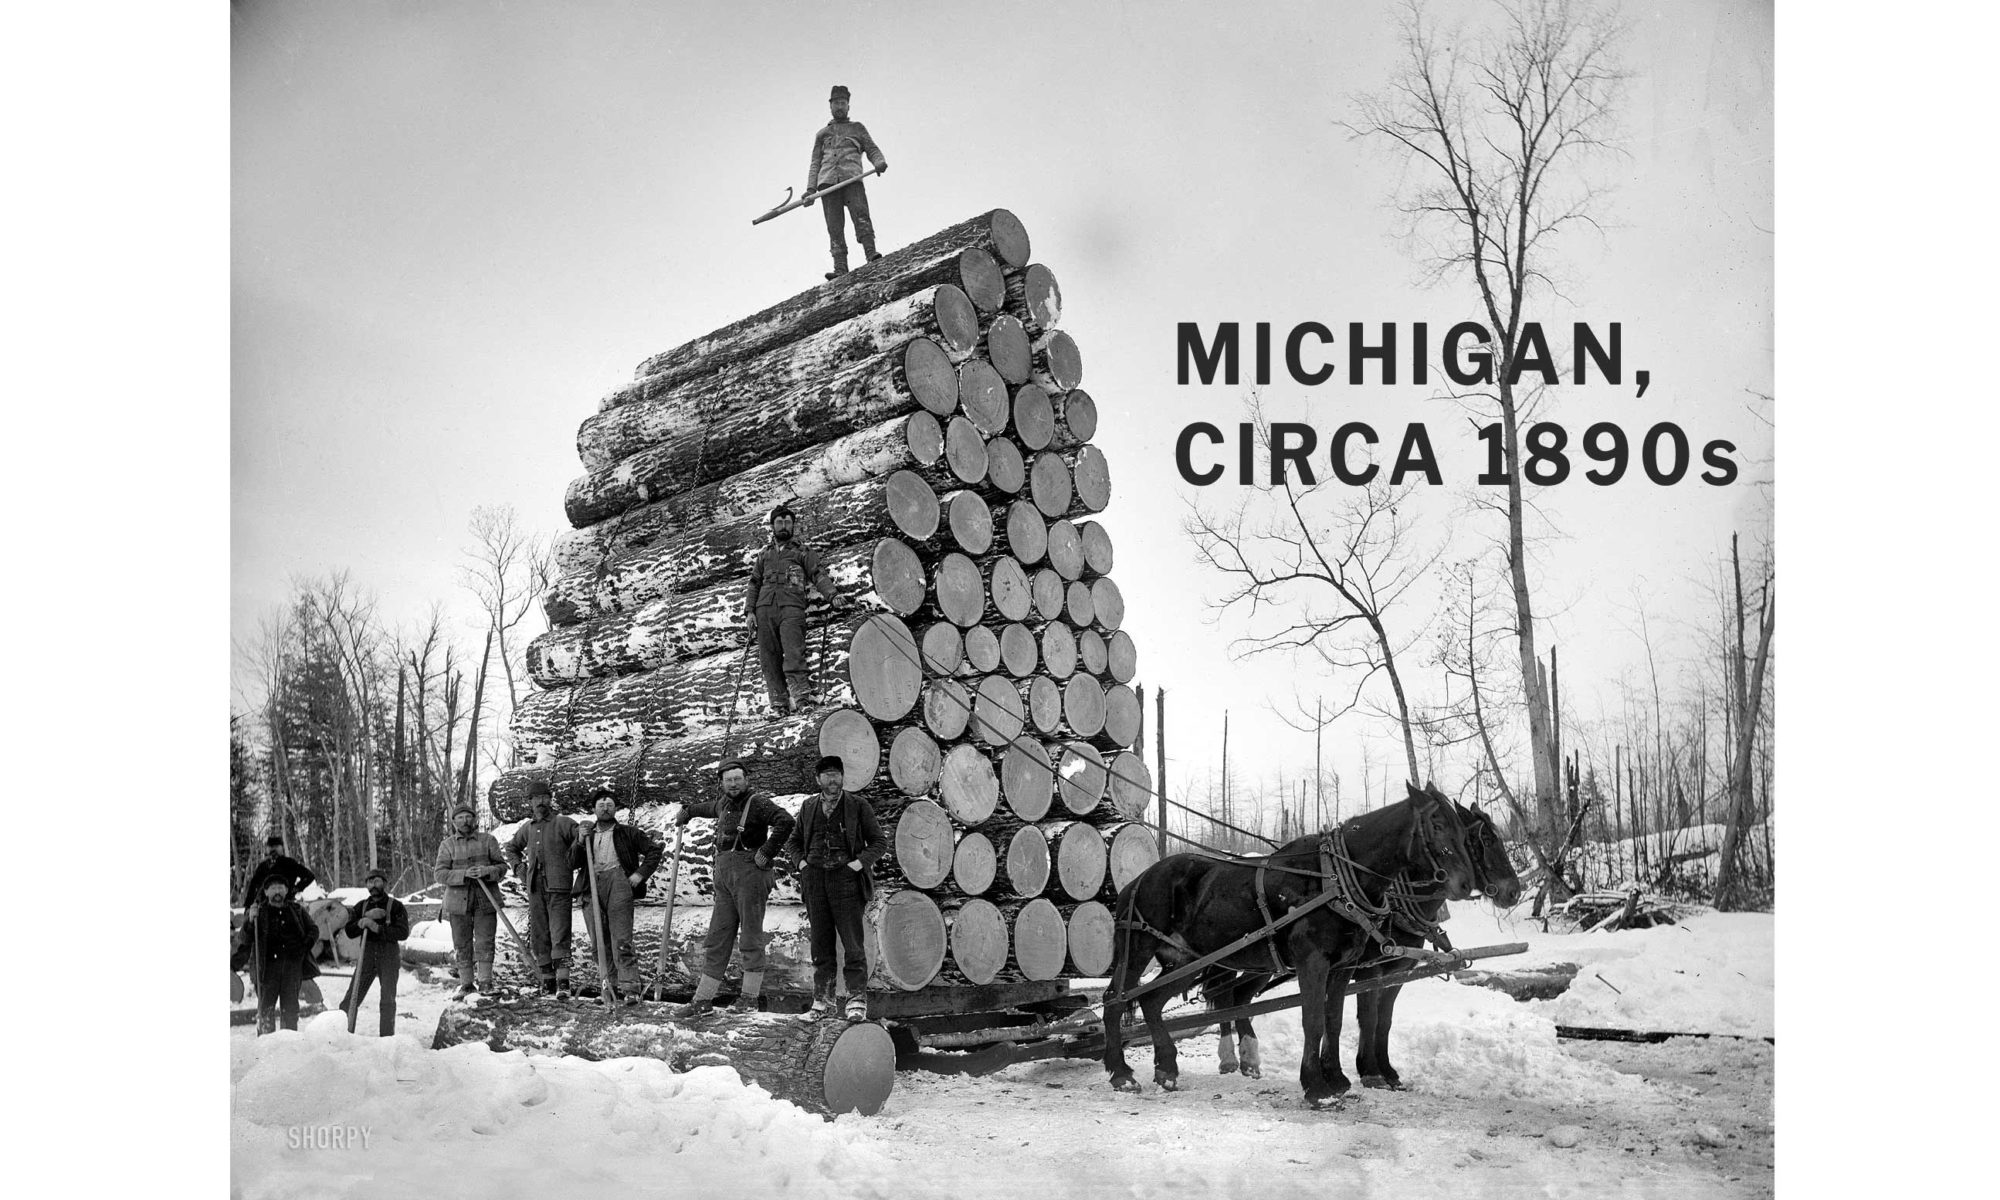 Historical photo of loggers surrounding a massive load of cut timber which is on a sled pulled by two horses